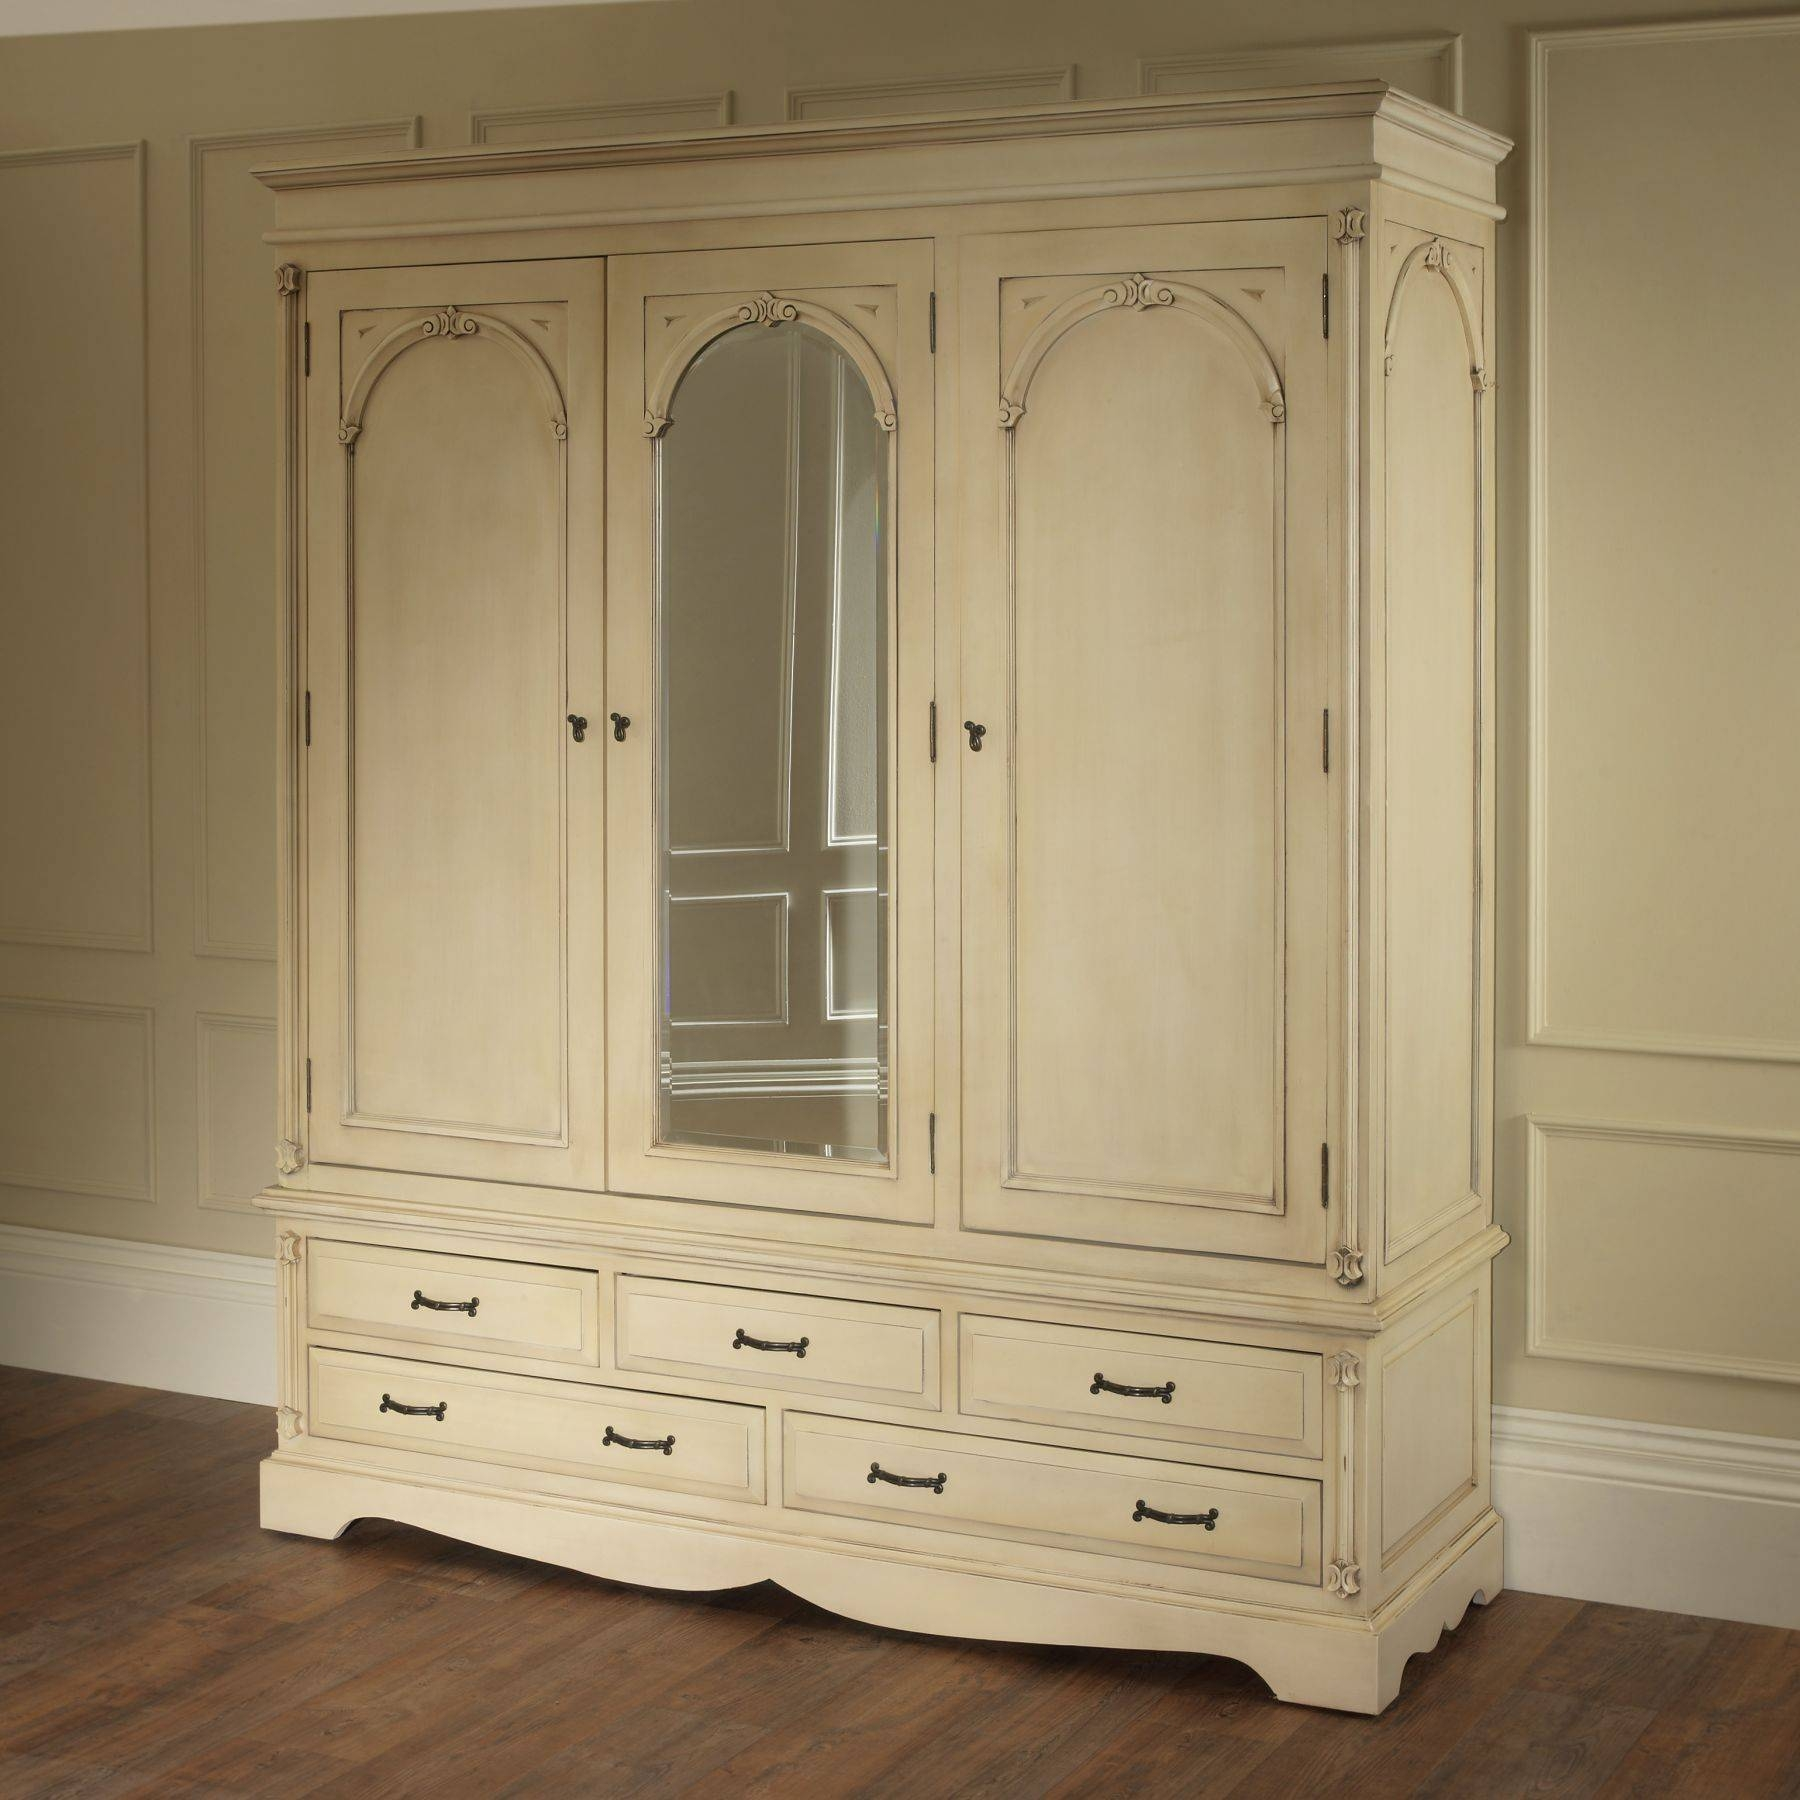 Bedroom Furniture : White Small Classic Armoire Wooden Vintage In White Vintage Wardrobes (View 2 of 15)